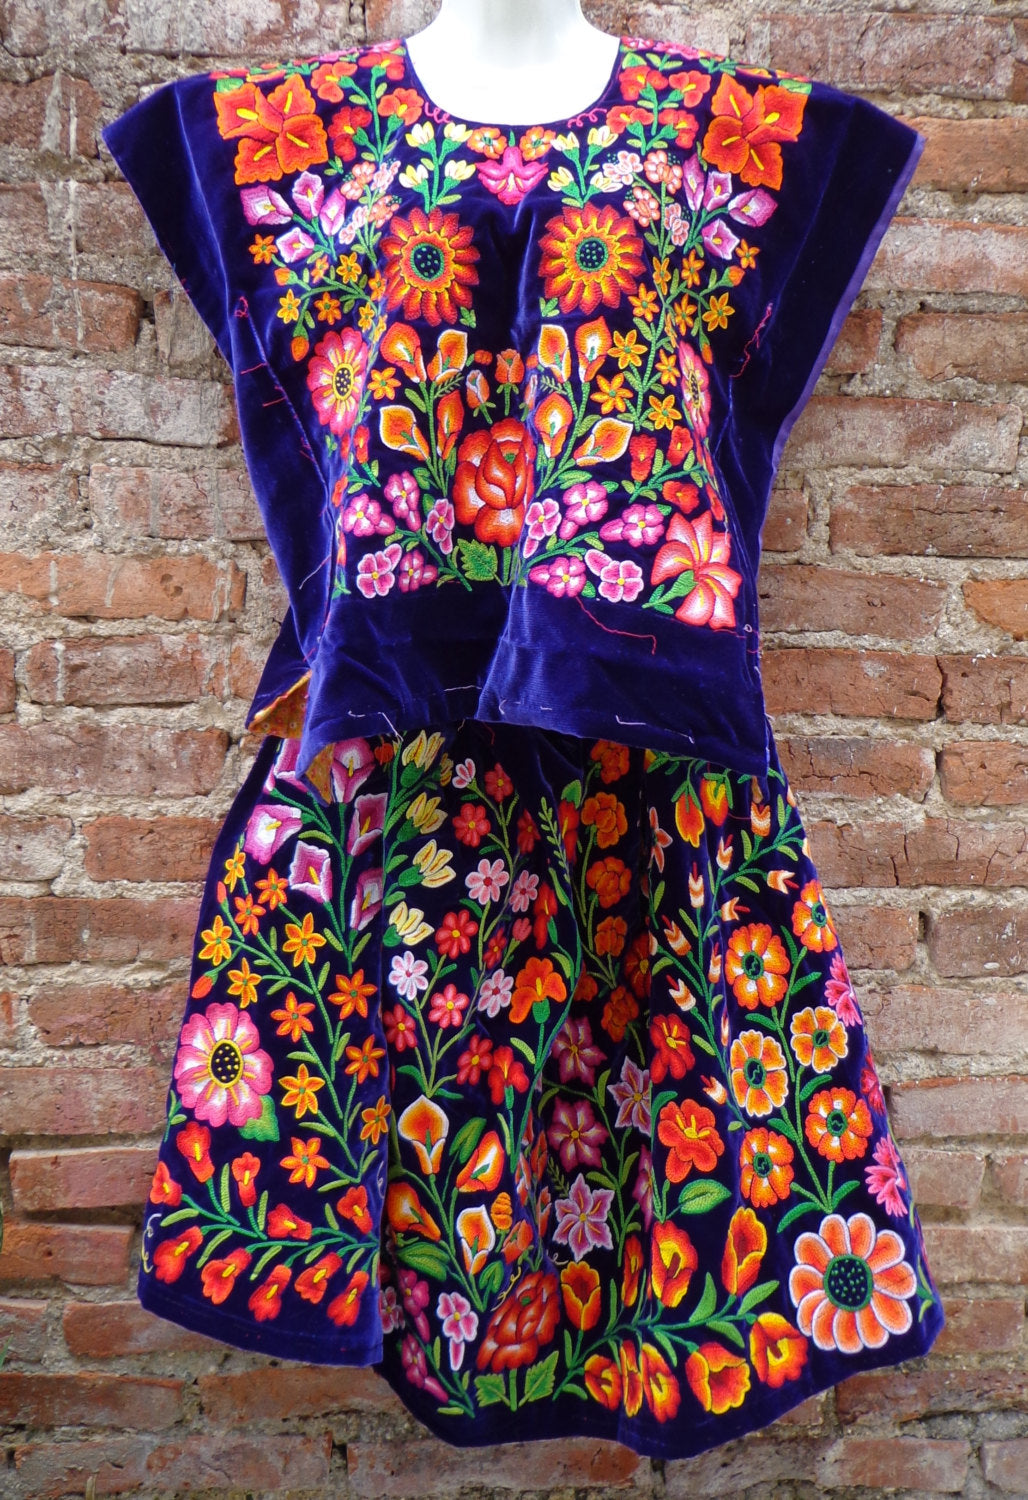 Tehuana Huipil Dress outfit Hand Embroidered from Oaxaca Vintage Mexican